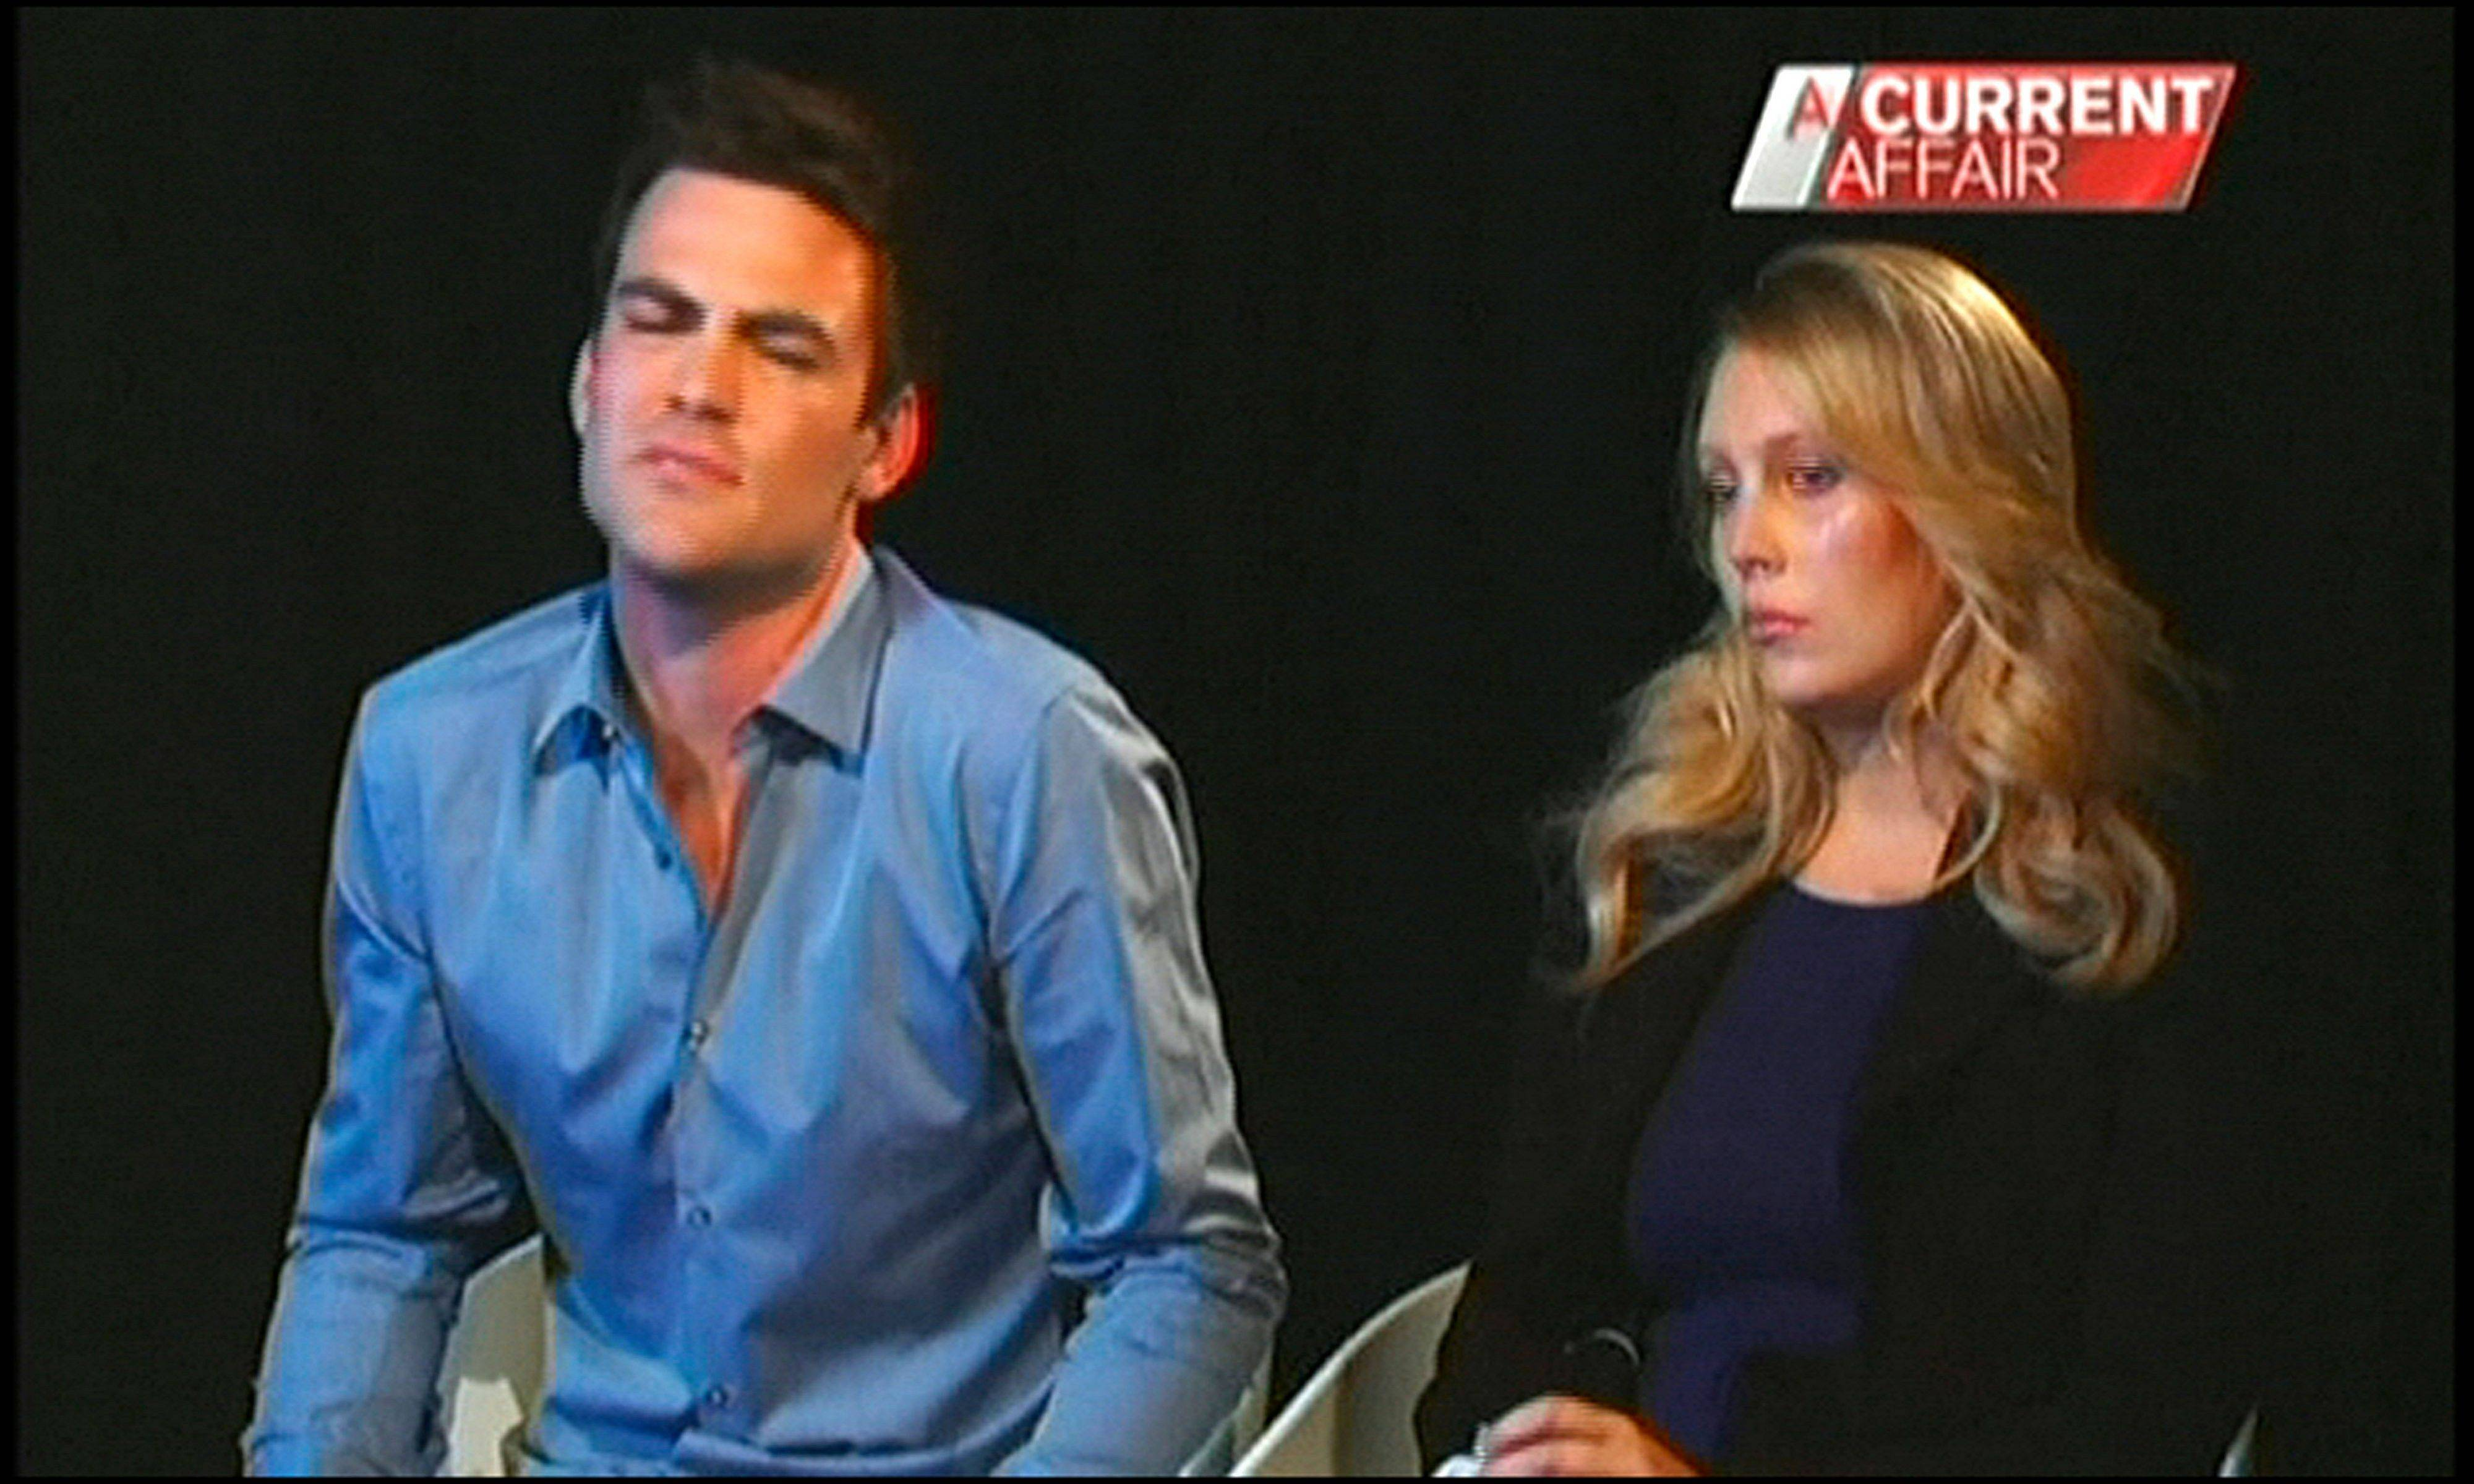 Australian radio DJs Michael Christian, left, and Mel Greig appear during an interview with Australia�s Channel Nine. The two managed to impersonate Queen Elizabeth II and Prince Charles and received confidential information about the Duchess of Cambridge�s medical condition, which was broadcast on-air.